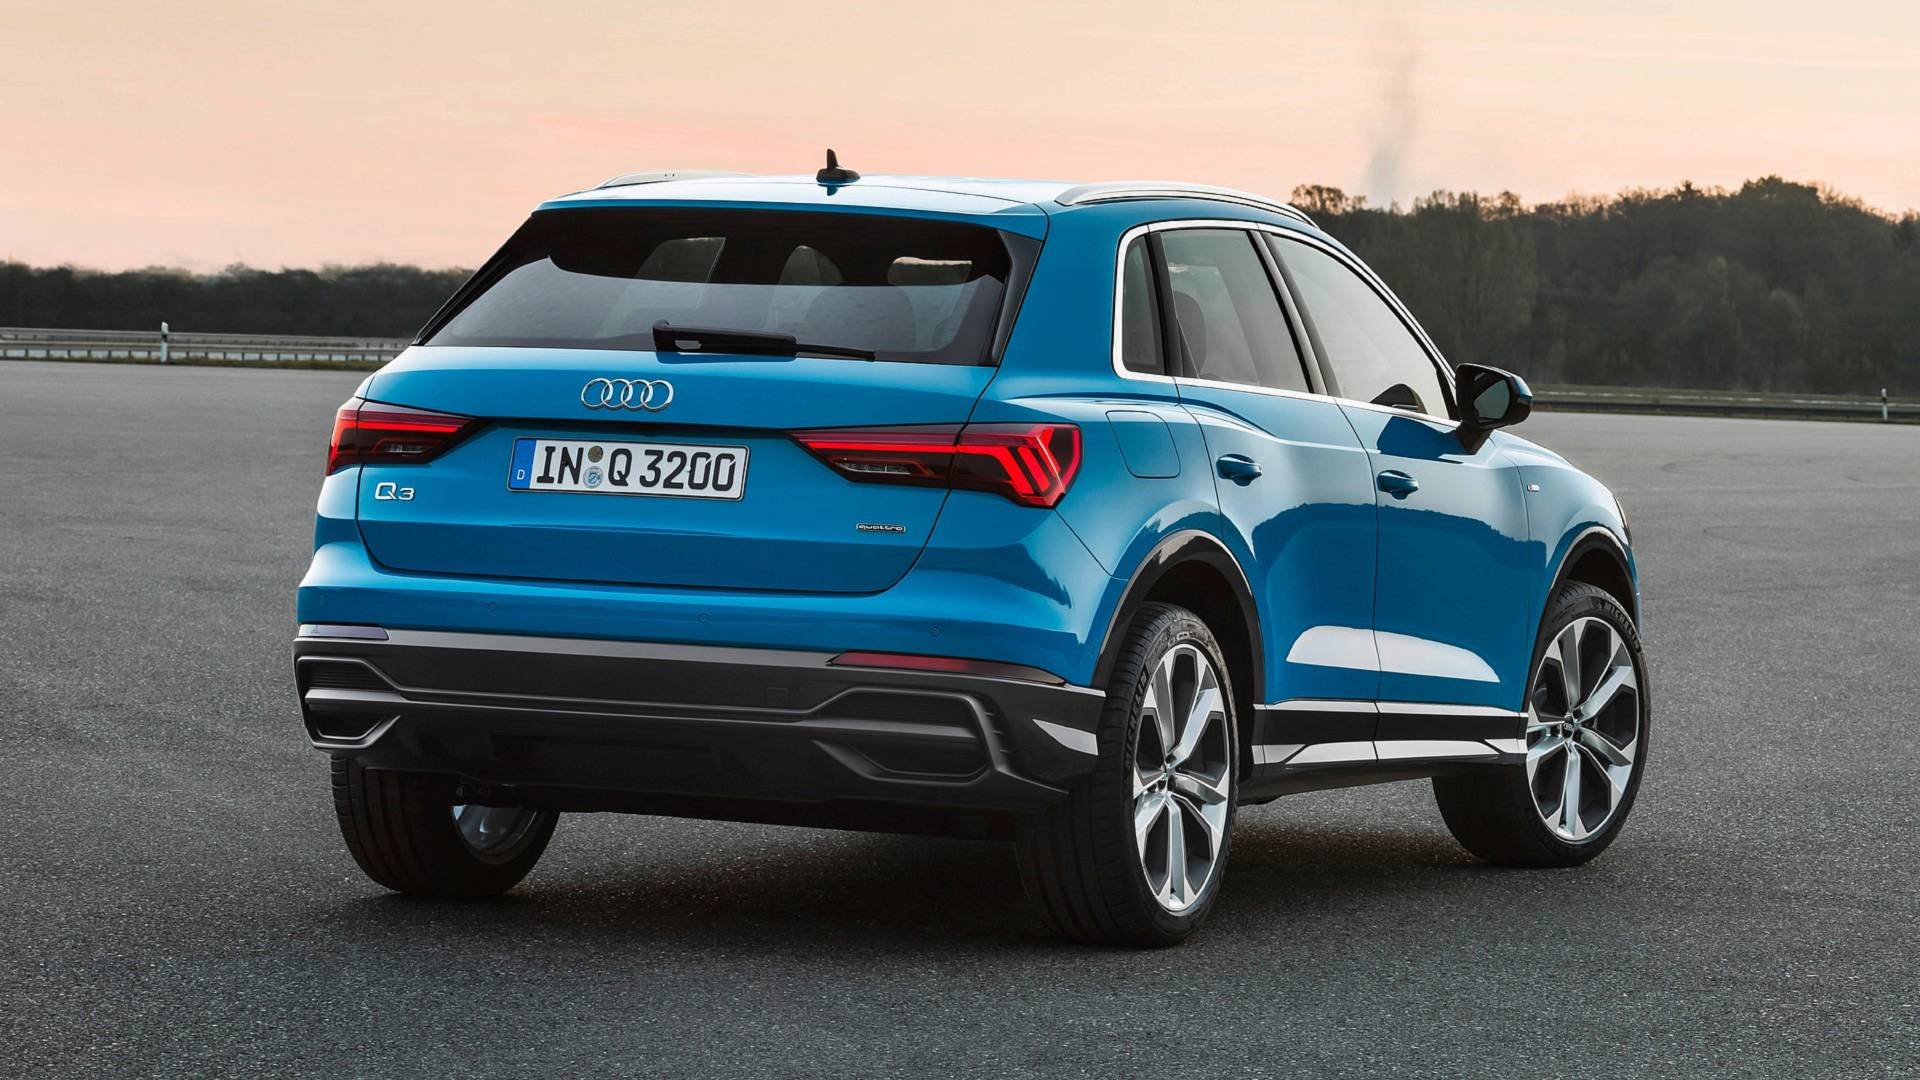 2019 audi q3 videos show turbo blue pulse orange and chronos grey paint autoevolution. Black Bedroom Furniture Sets. Home Design Ideas